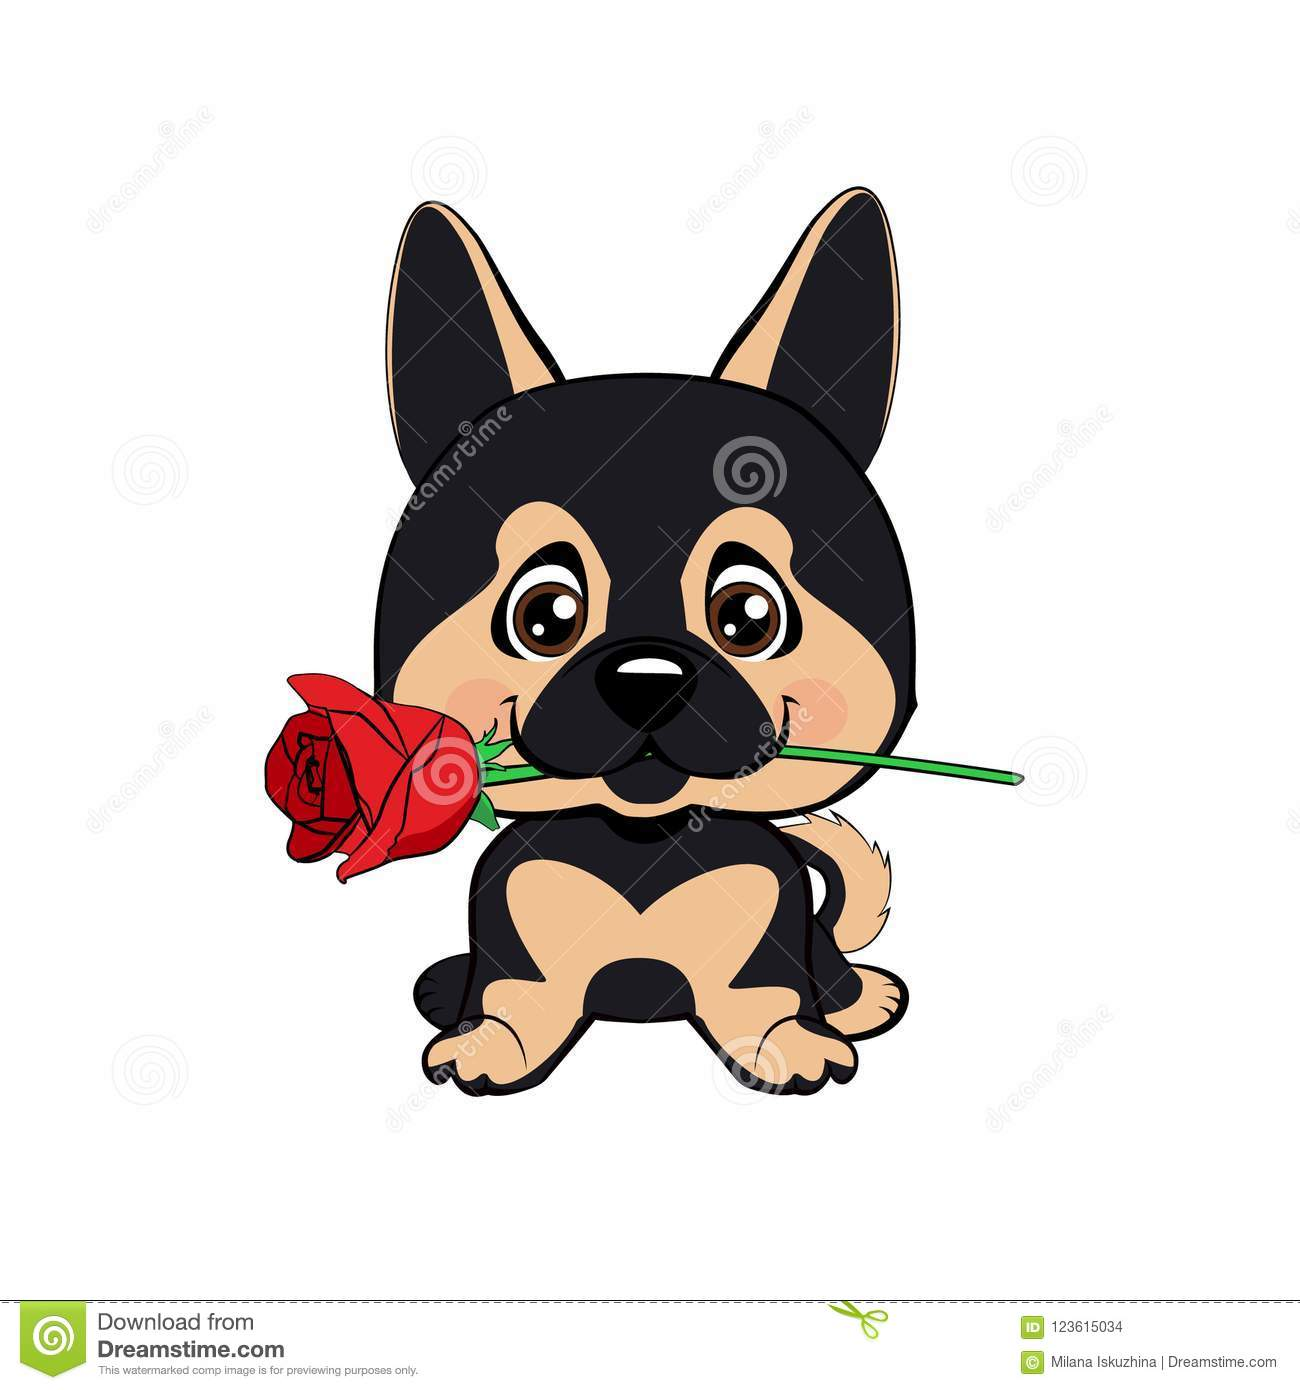 ee310d77 Cute puppy with a flower cartoon hand drawn vector illustration. Can be  used for t-shirt print, kids wear fashion design, baby shower invitation  card.